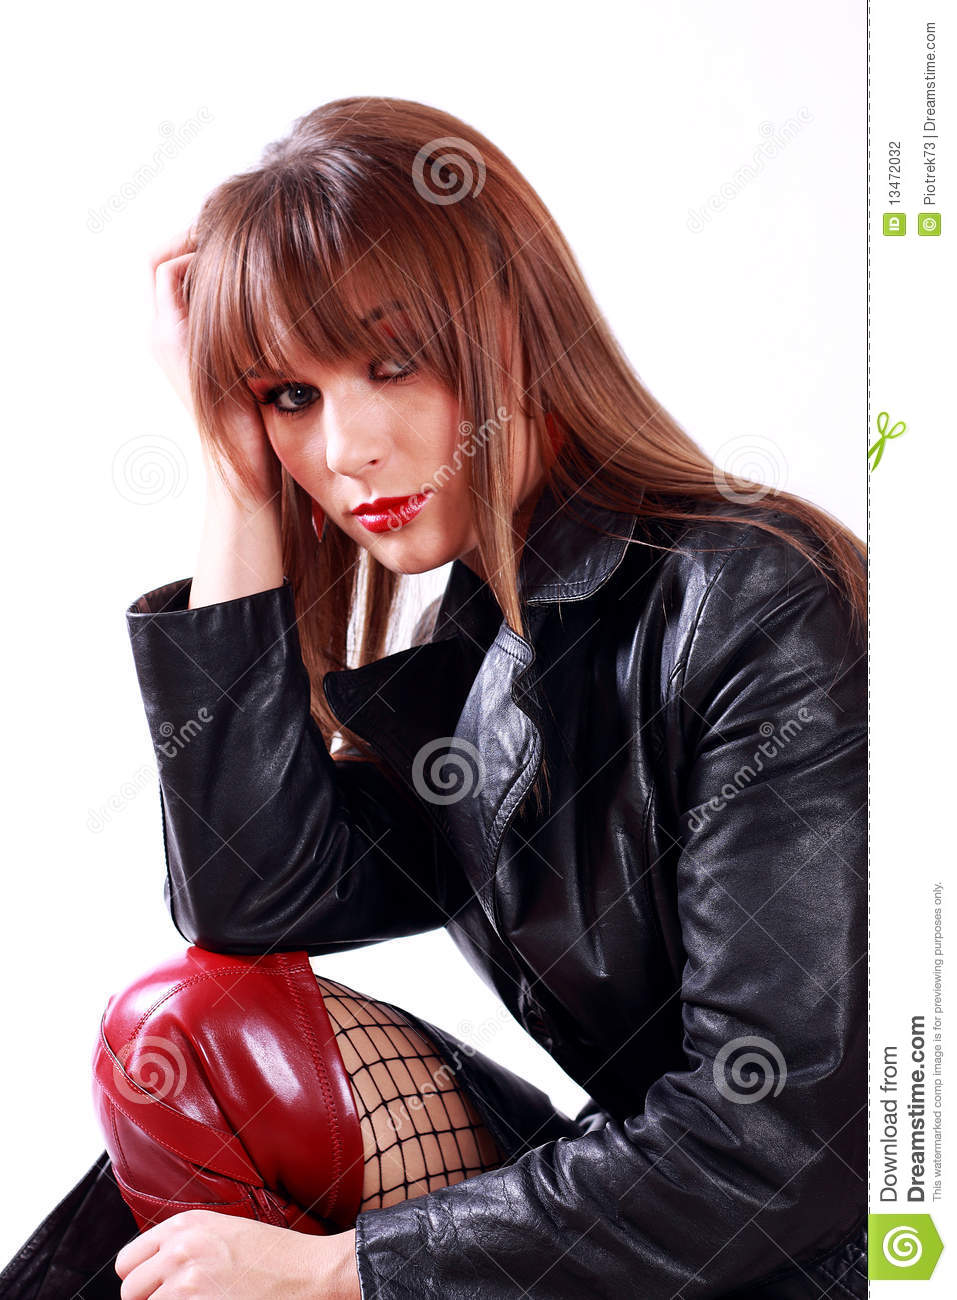 Biker Girl Wallpaper Free Download Girl In Leather Jacket Stock Photography Image 13472032